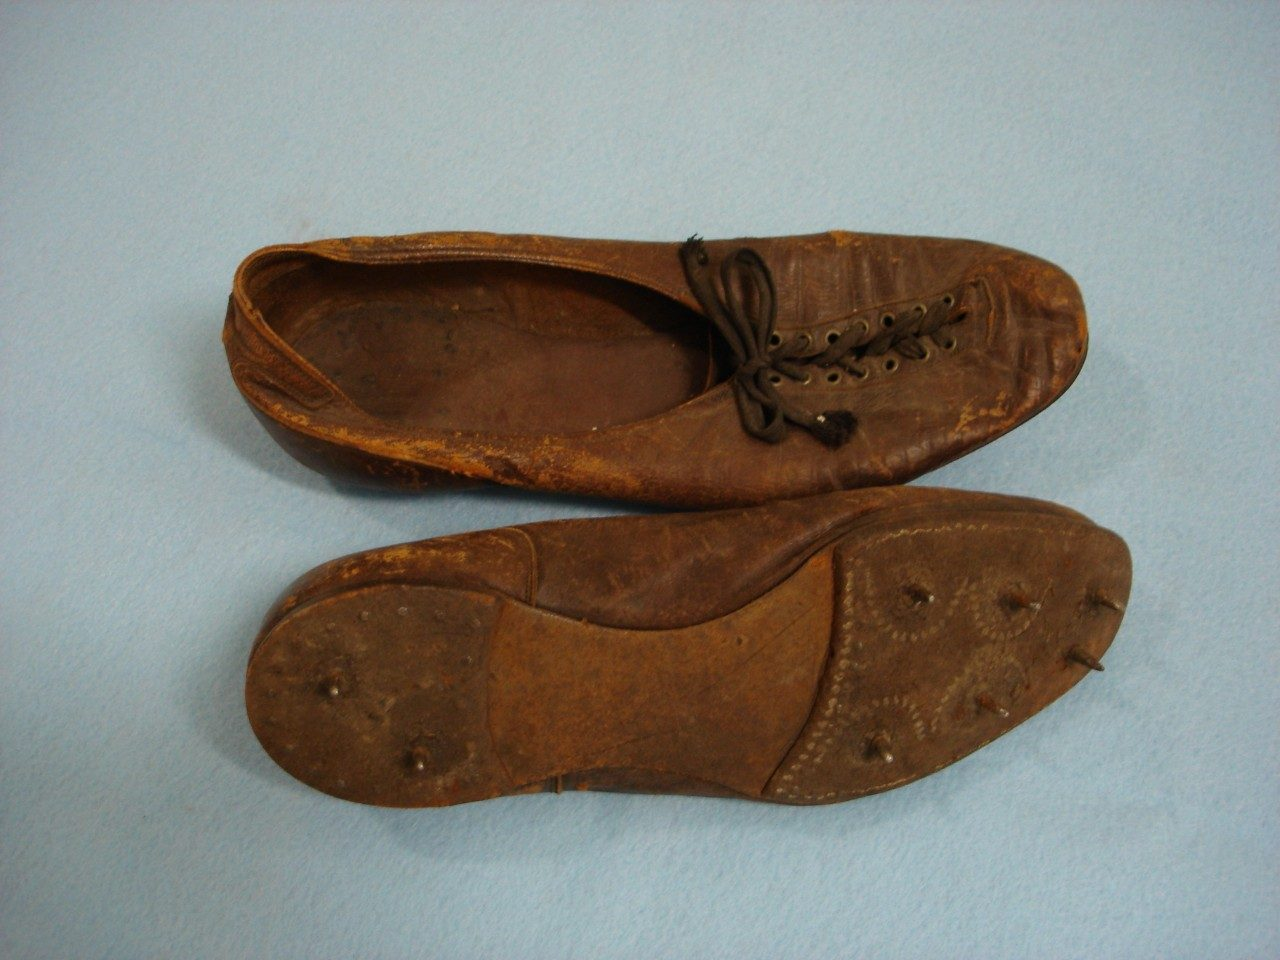 Track Shoes Worn by Eugene Schmitt, Columbia University Track Athlete, 1914-1915 (University Museum photo, click on image to enlarge)